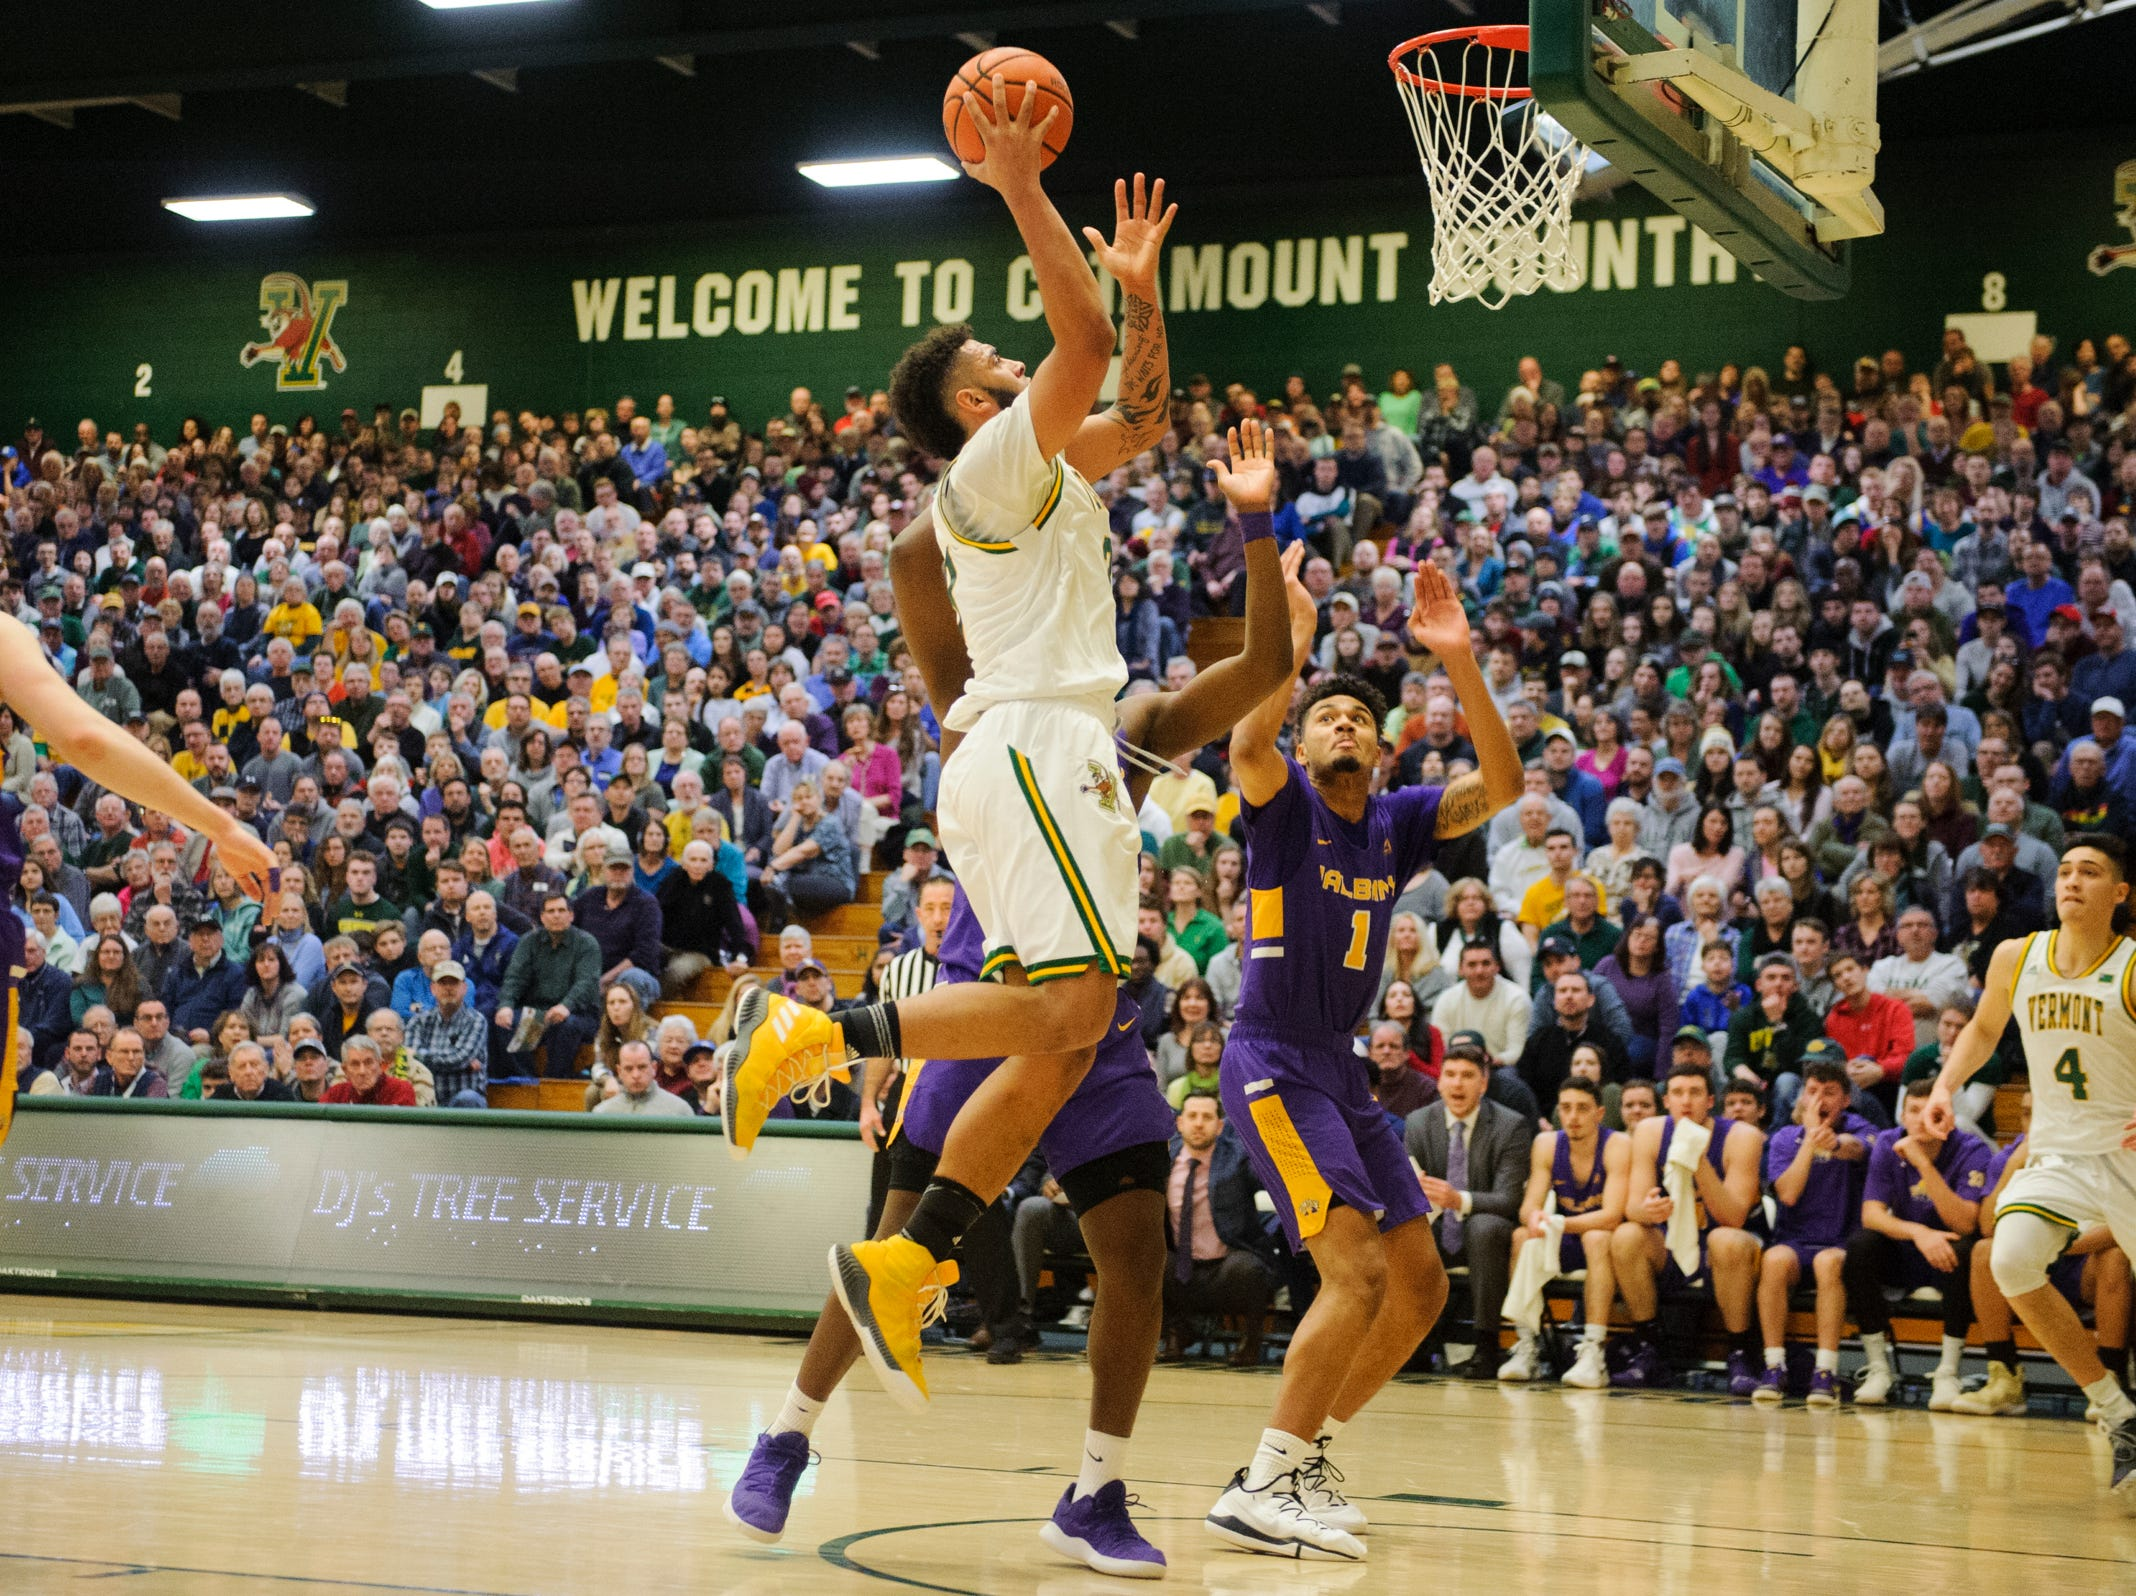 Vermont forward Anthony Lamb (3) leaps for a lay up during the men's basketball game between the Albany Great Danes and the Vermont Catamounts at Patrick Gym on Saturday February 9, 2019 in Burlington, Vermont.